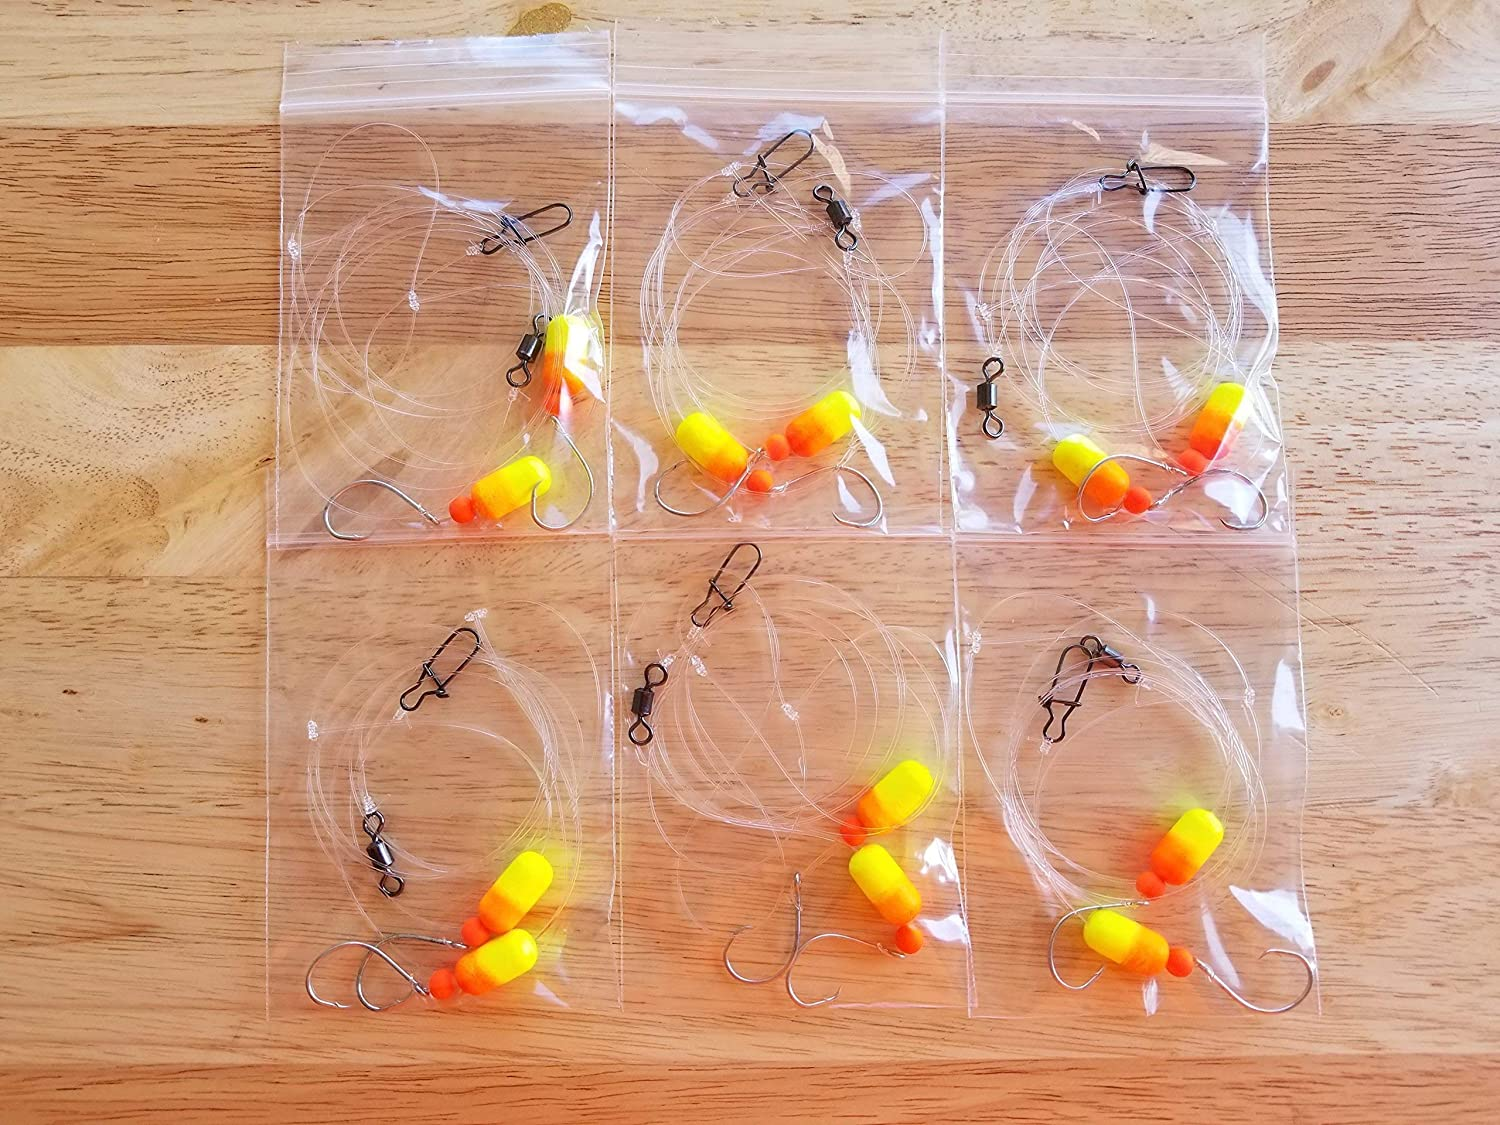 Pier Rigs 10 Fluorocarbon Surf Fishing Rigs Free Shipping Boat Rigs